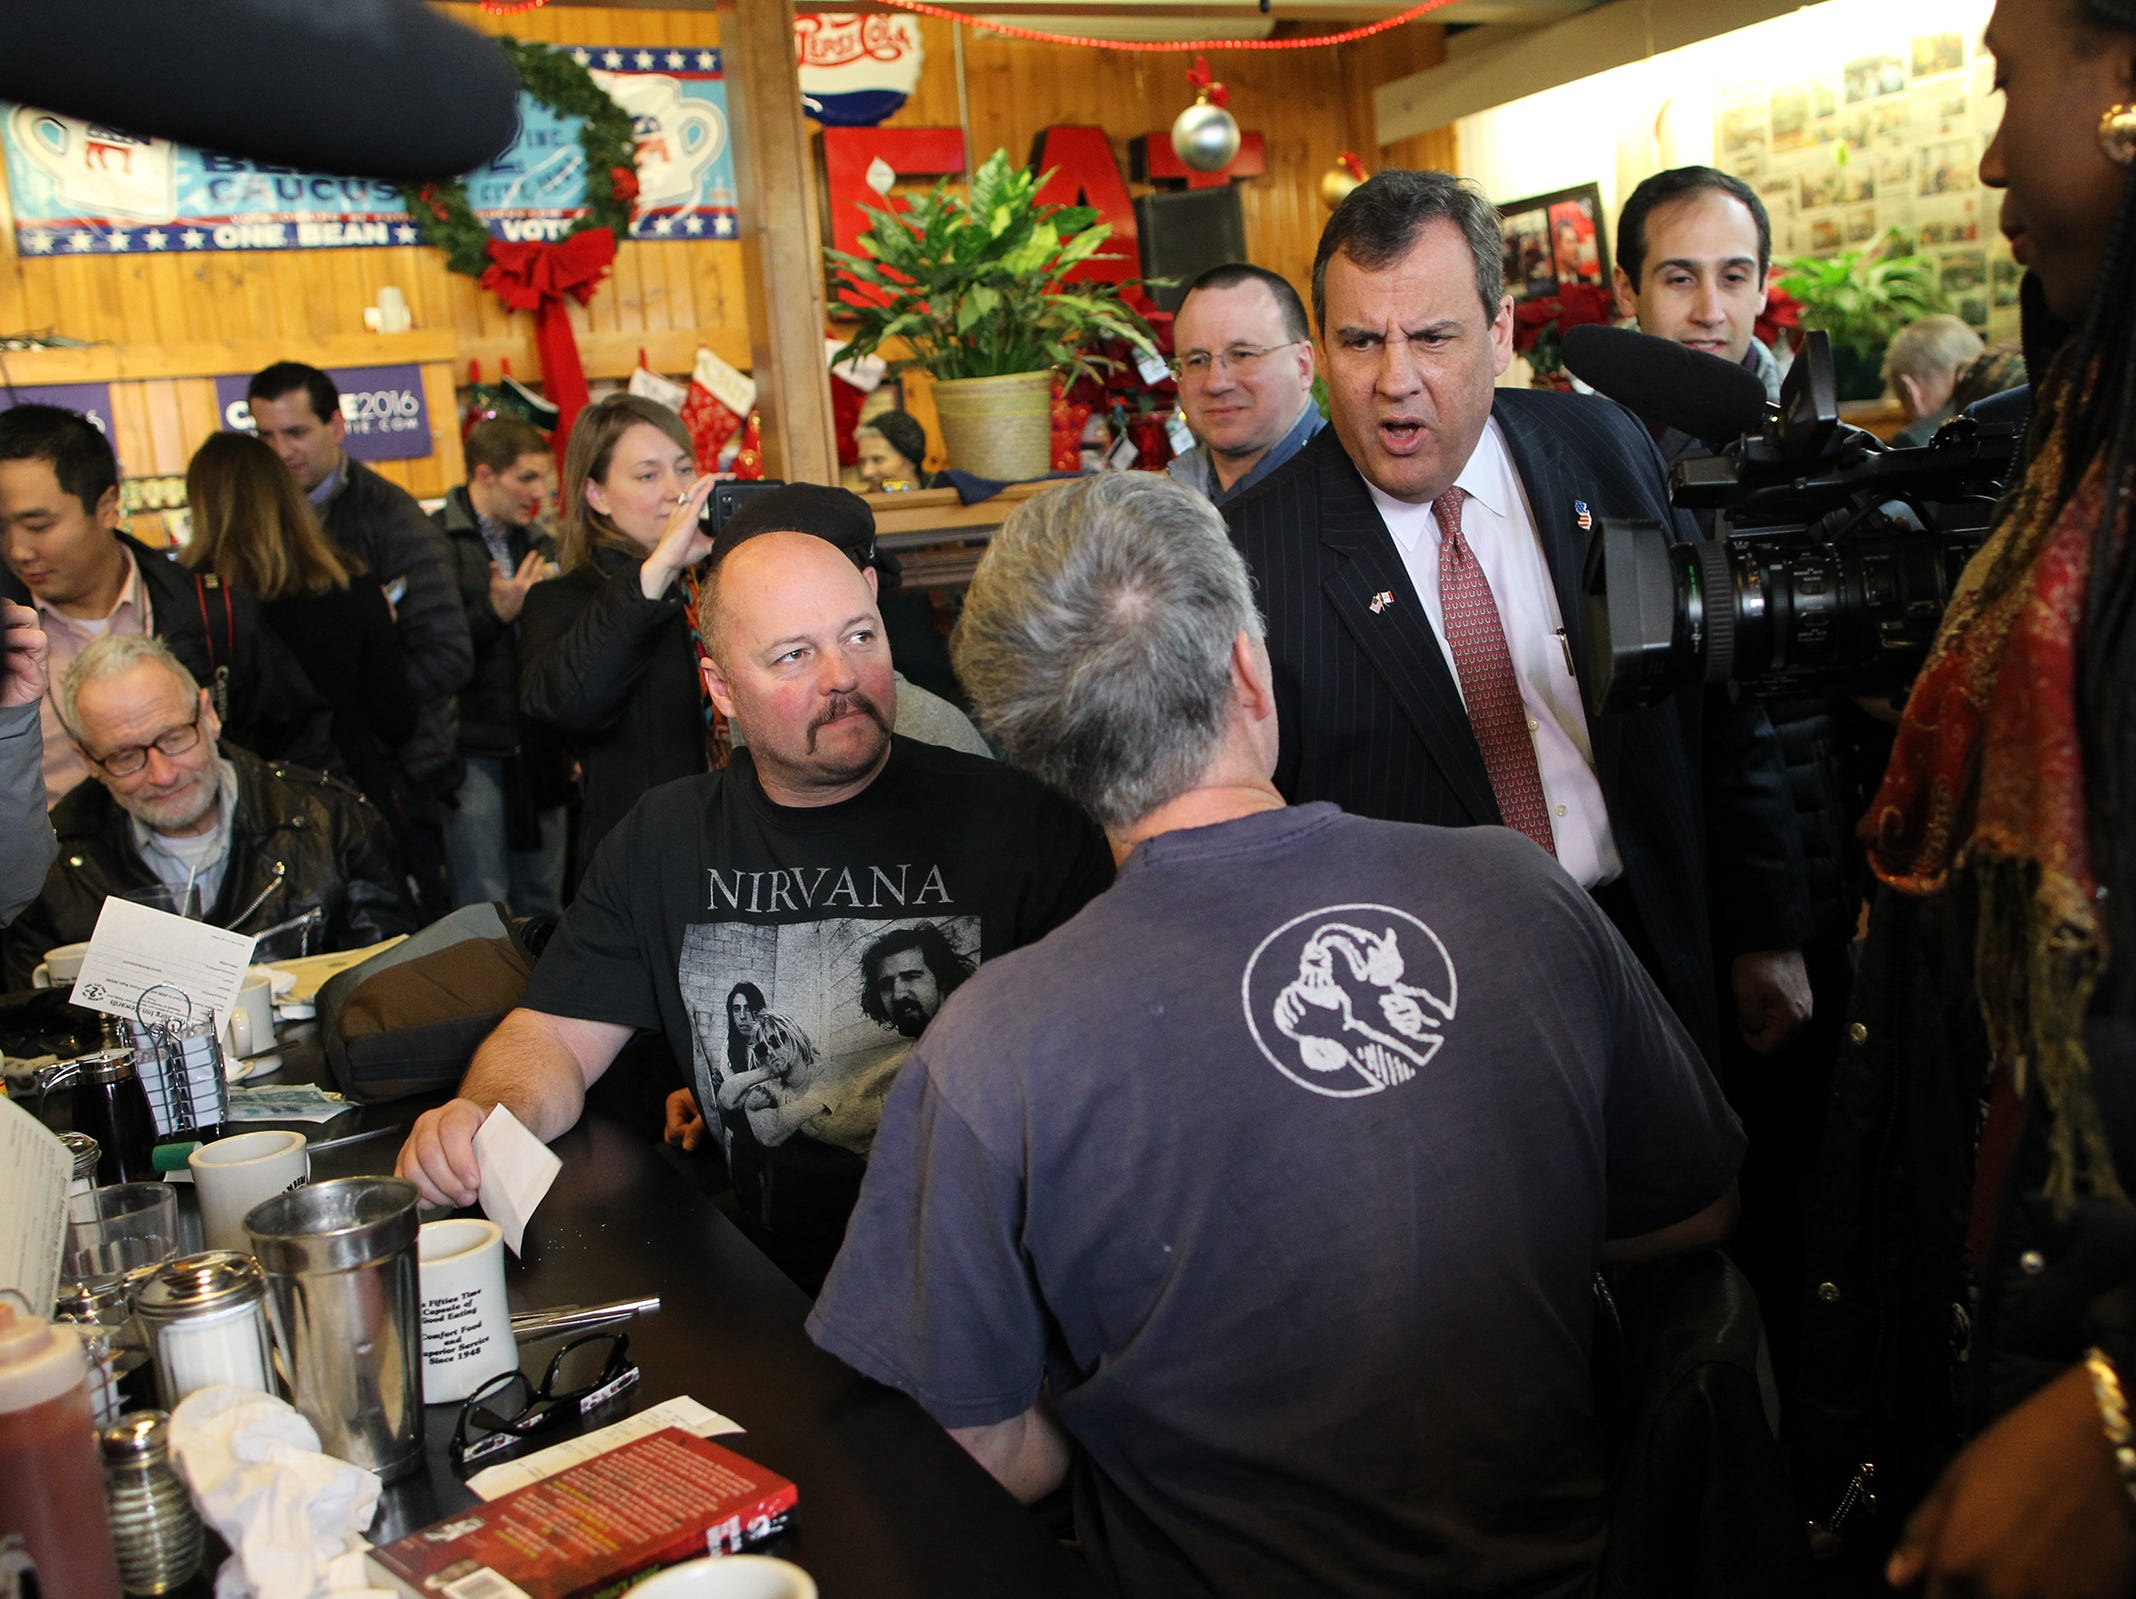 Republican presidential candidate Chris Christie greets guests at Hamburg Inn on Tuesday, Dec. 29, 2015.